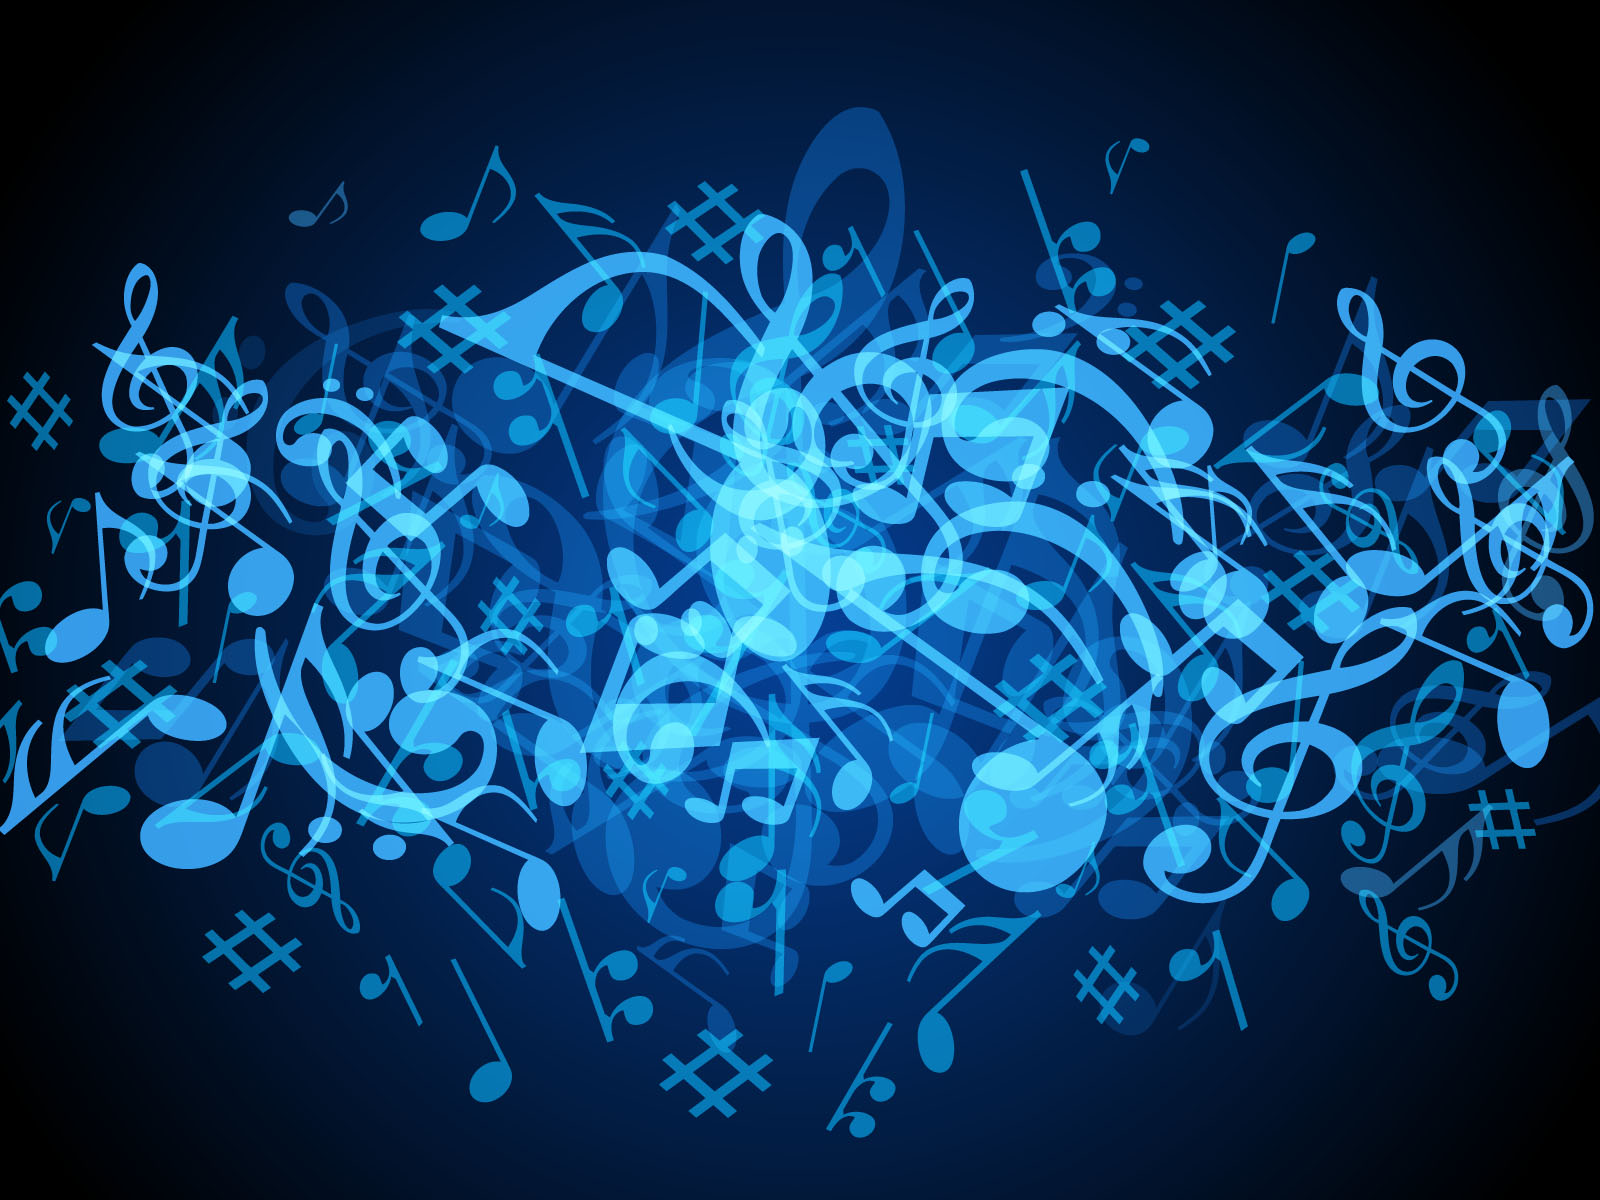 Blue-Music-Backgrounds-Powerpoint.jpg